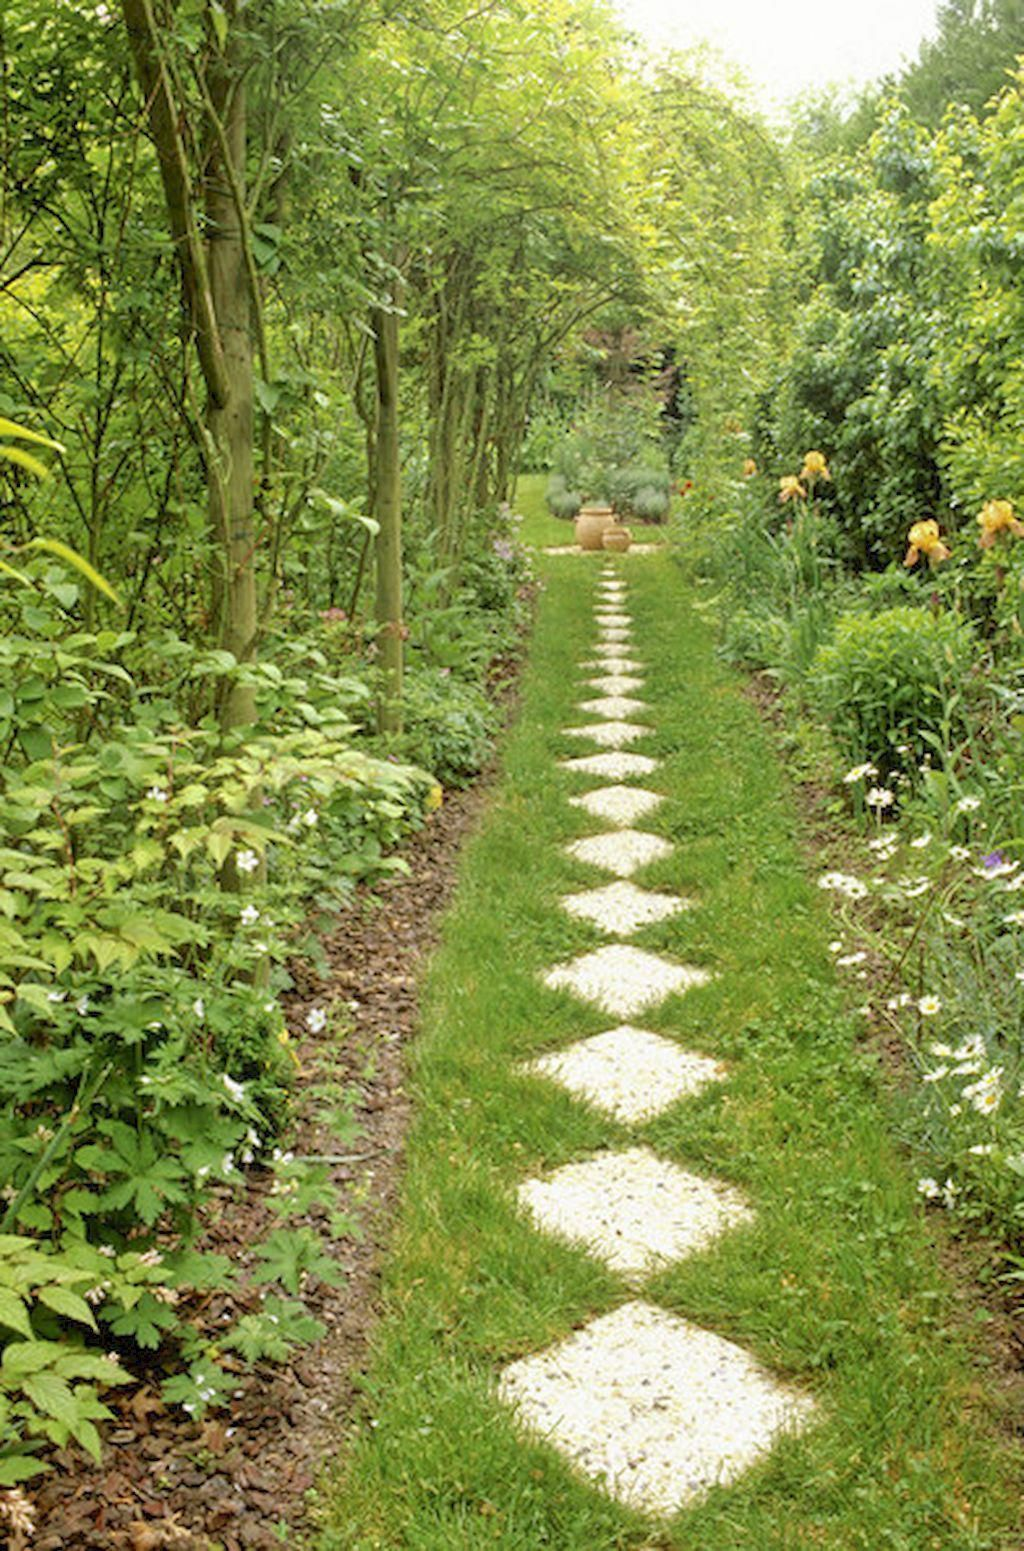 Top 100 stepping stones pathway remodel ideas (84) #countryGarden #steppingstonespathway Top 100 stepping stones pathway remodel ideas (84) #countryGarden #steppingstonespathway Top 100 stepping stones pathway remodel ideas (84) #countryGarden #steppingstonespathway Top 100 stepping stones pathway remodel ideas (84) #countryGarden #steppingstonespathway Top 100 stepping stones pathway remodel ideas (84) #countryGarden #steppingstonespathway Top 100 stepping stones pathway remodel ideas (84) #cou #steppingstonespathway